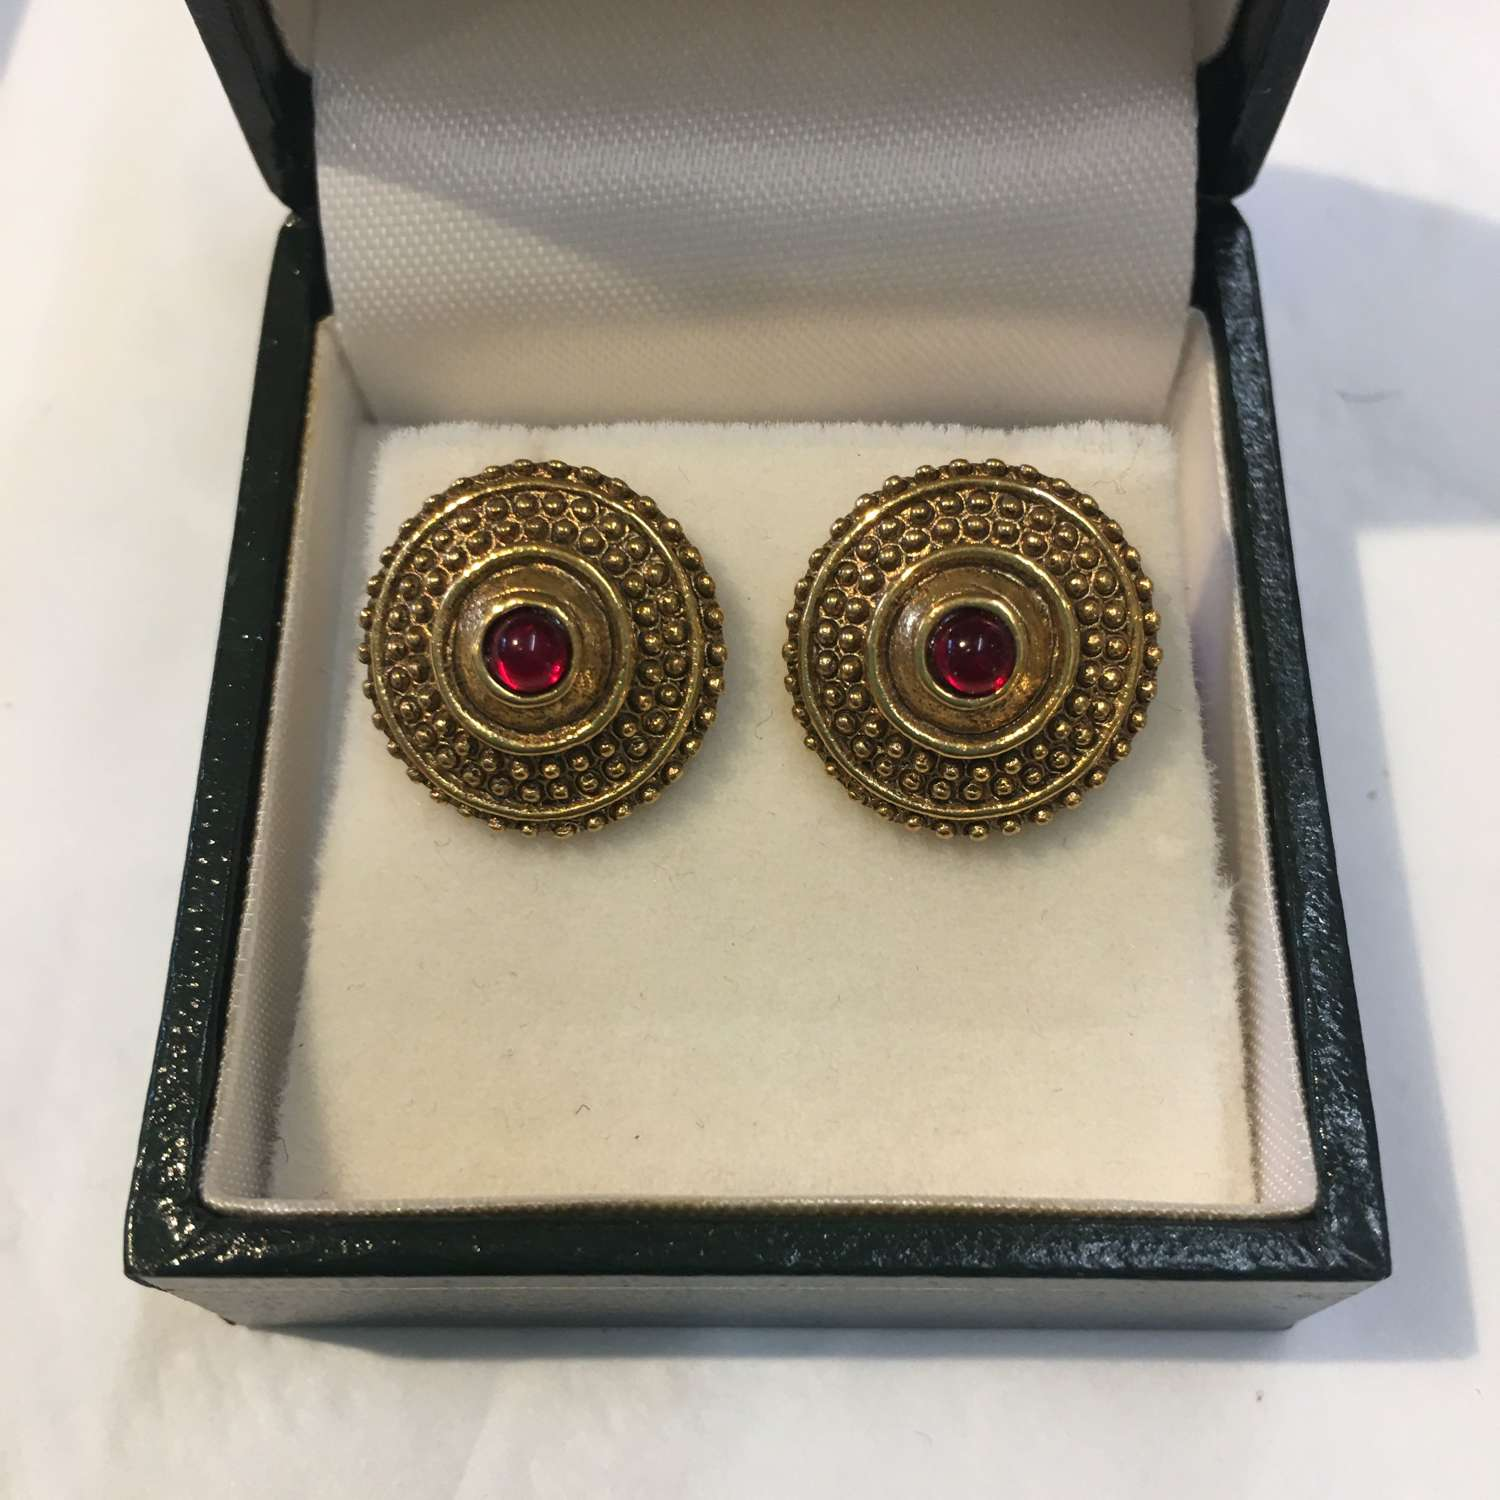 1928 vintage round stud earrings with red glass centre stone